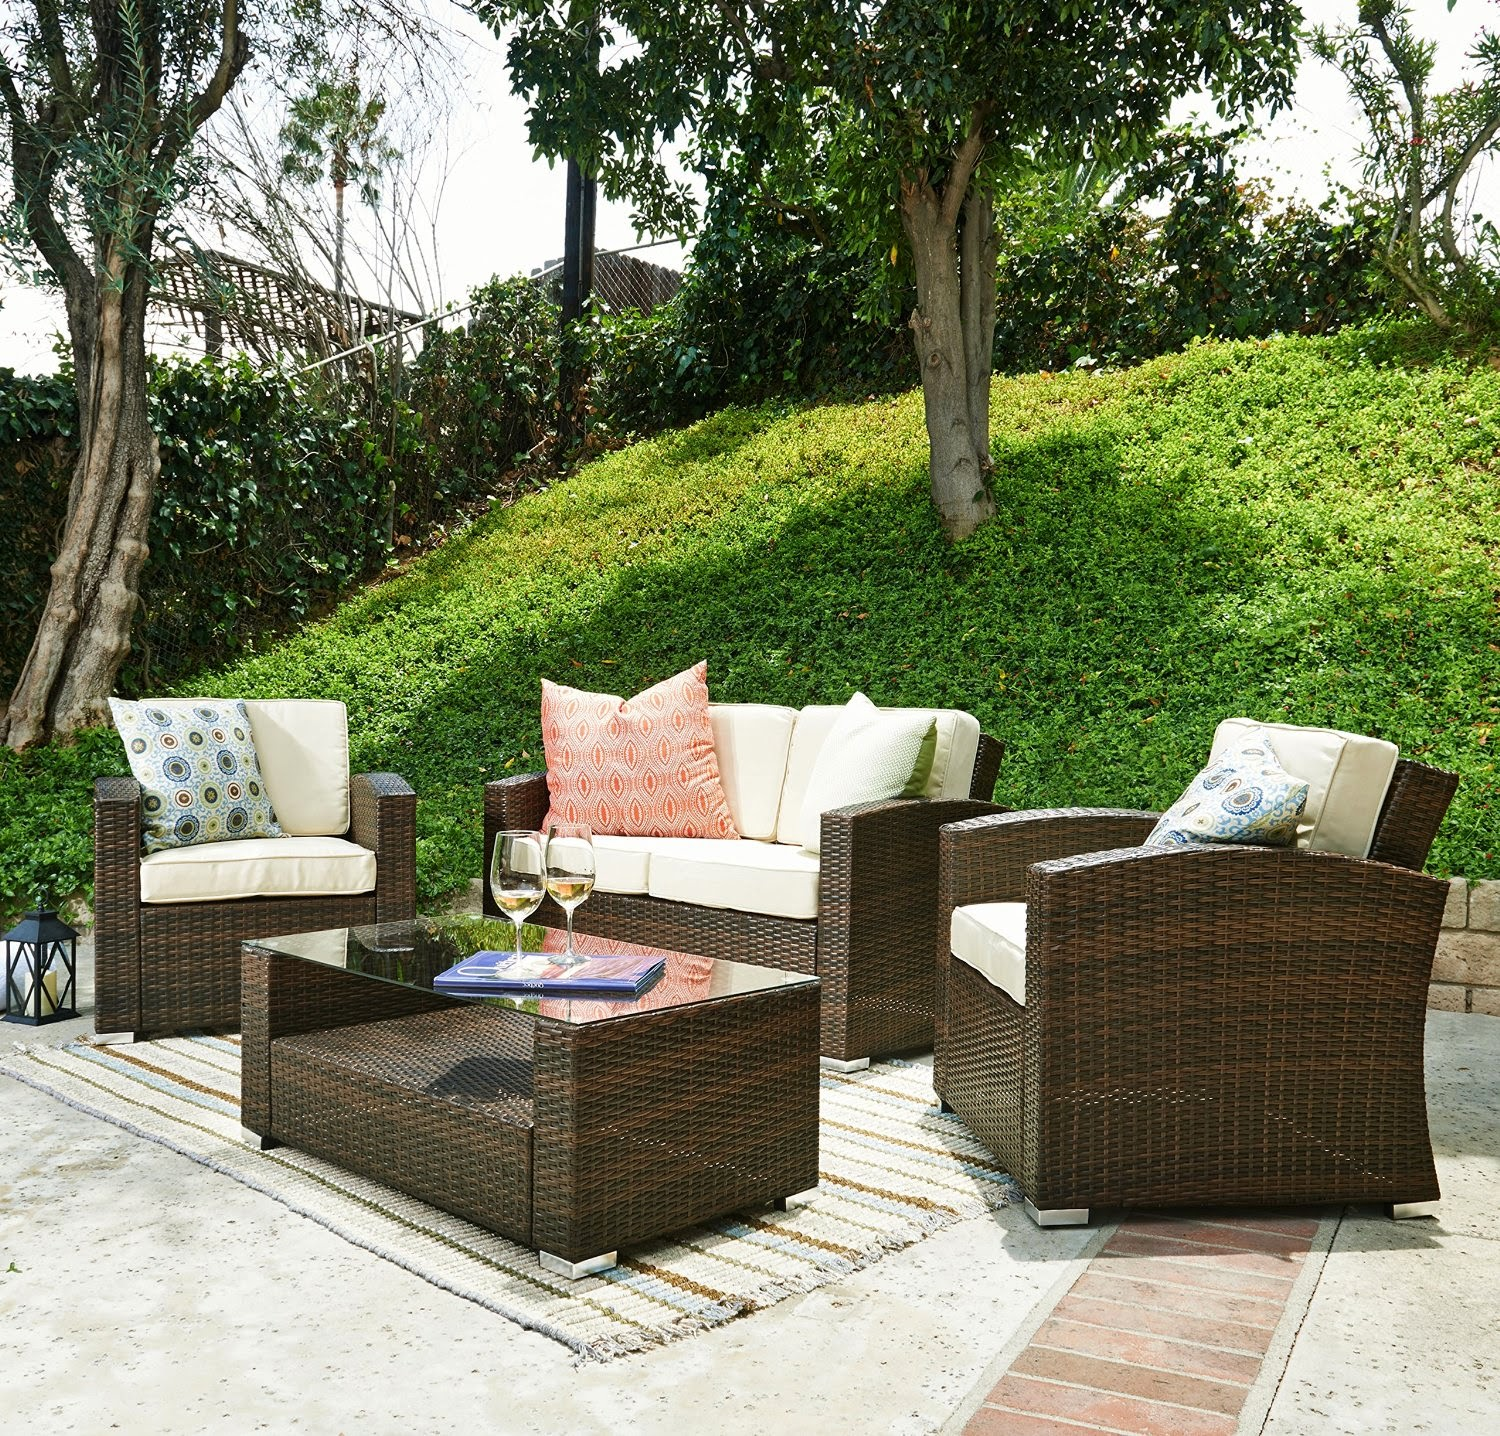 Discount special sale off 58 for outdoor furniture sofa for Outdoor patio couch set